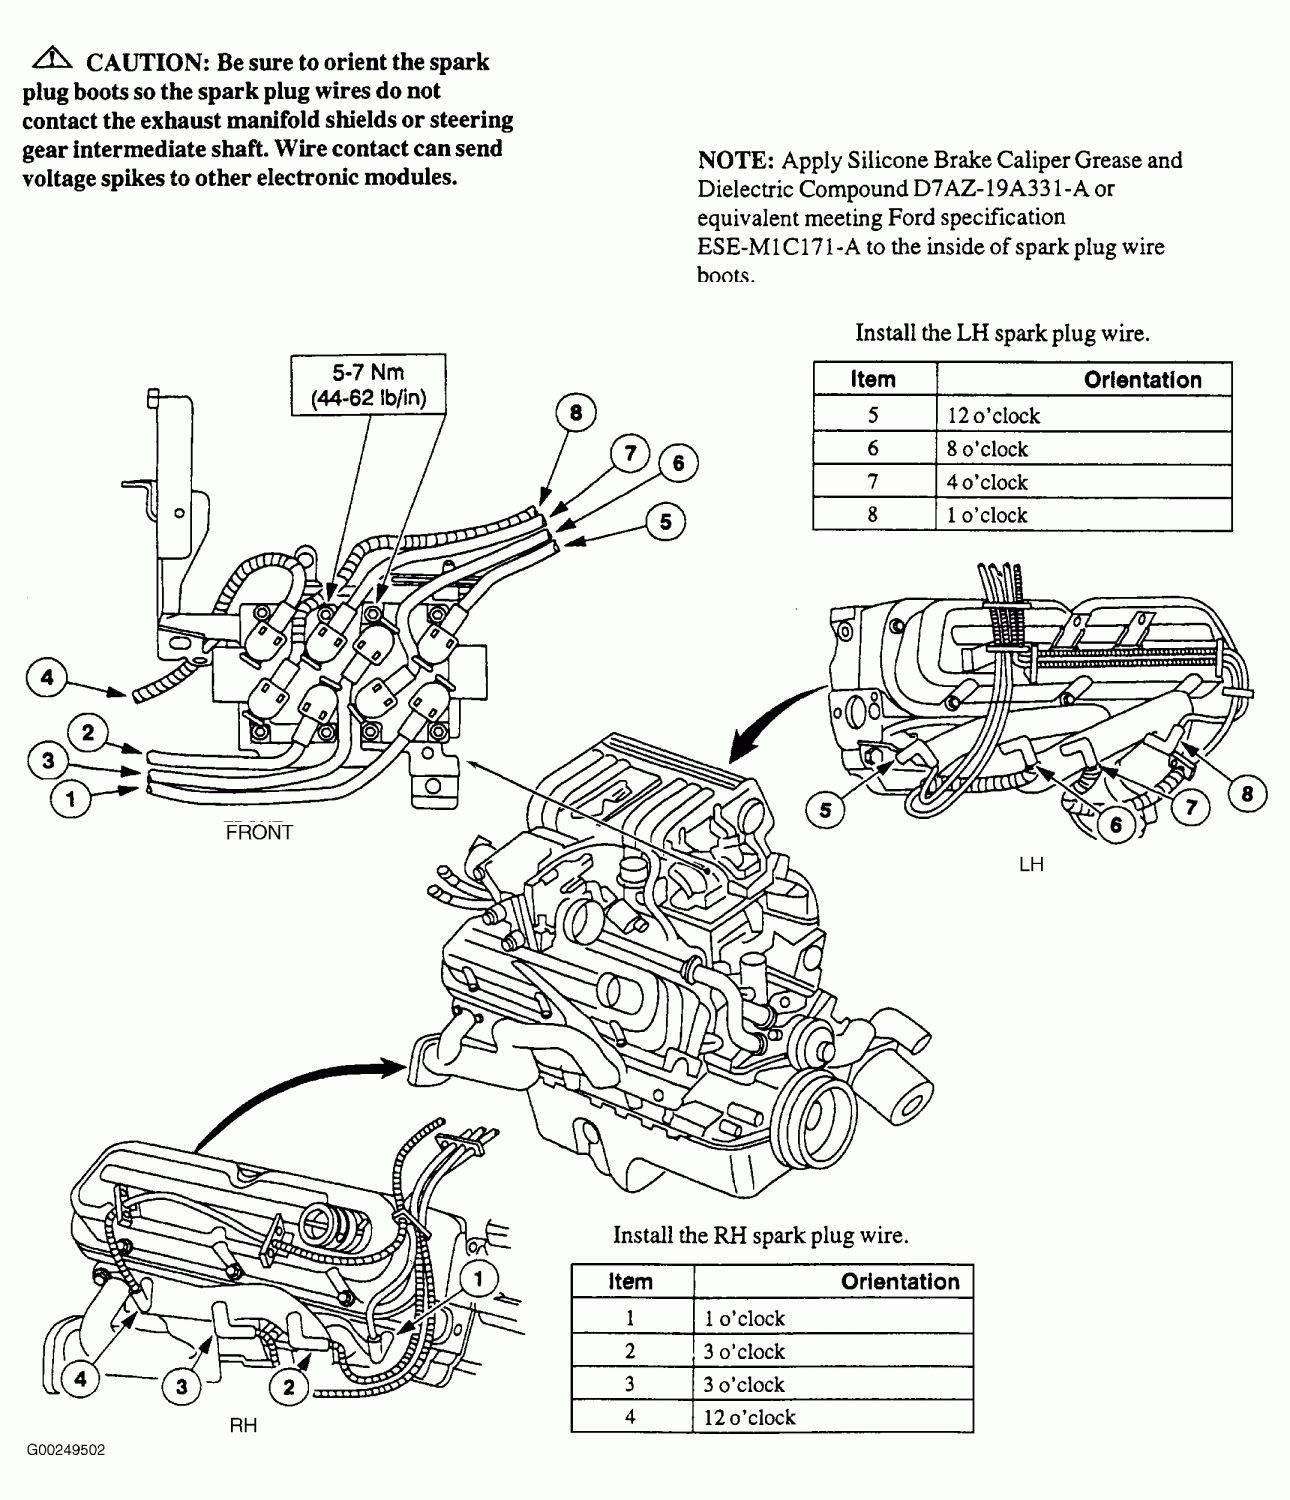 1996 Ford Explorer Engine Wiring Diagram And Firing Order Needed I Have The Vehicle Listed Above With A Ford Explorer Ford Engineering